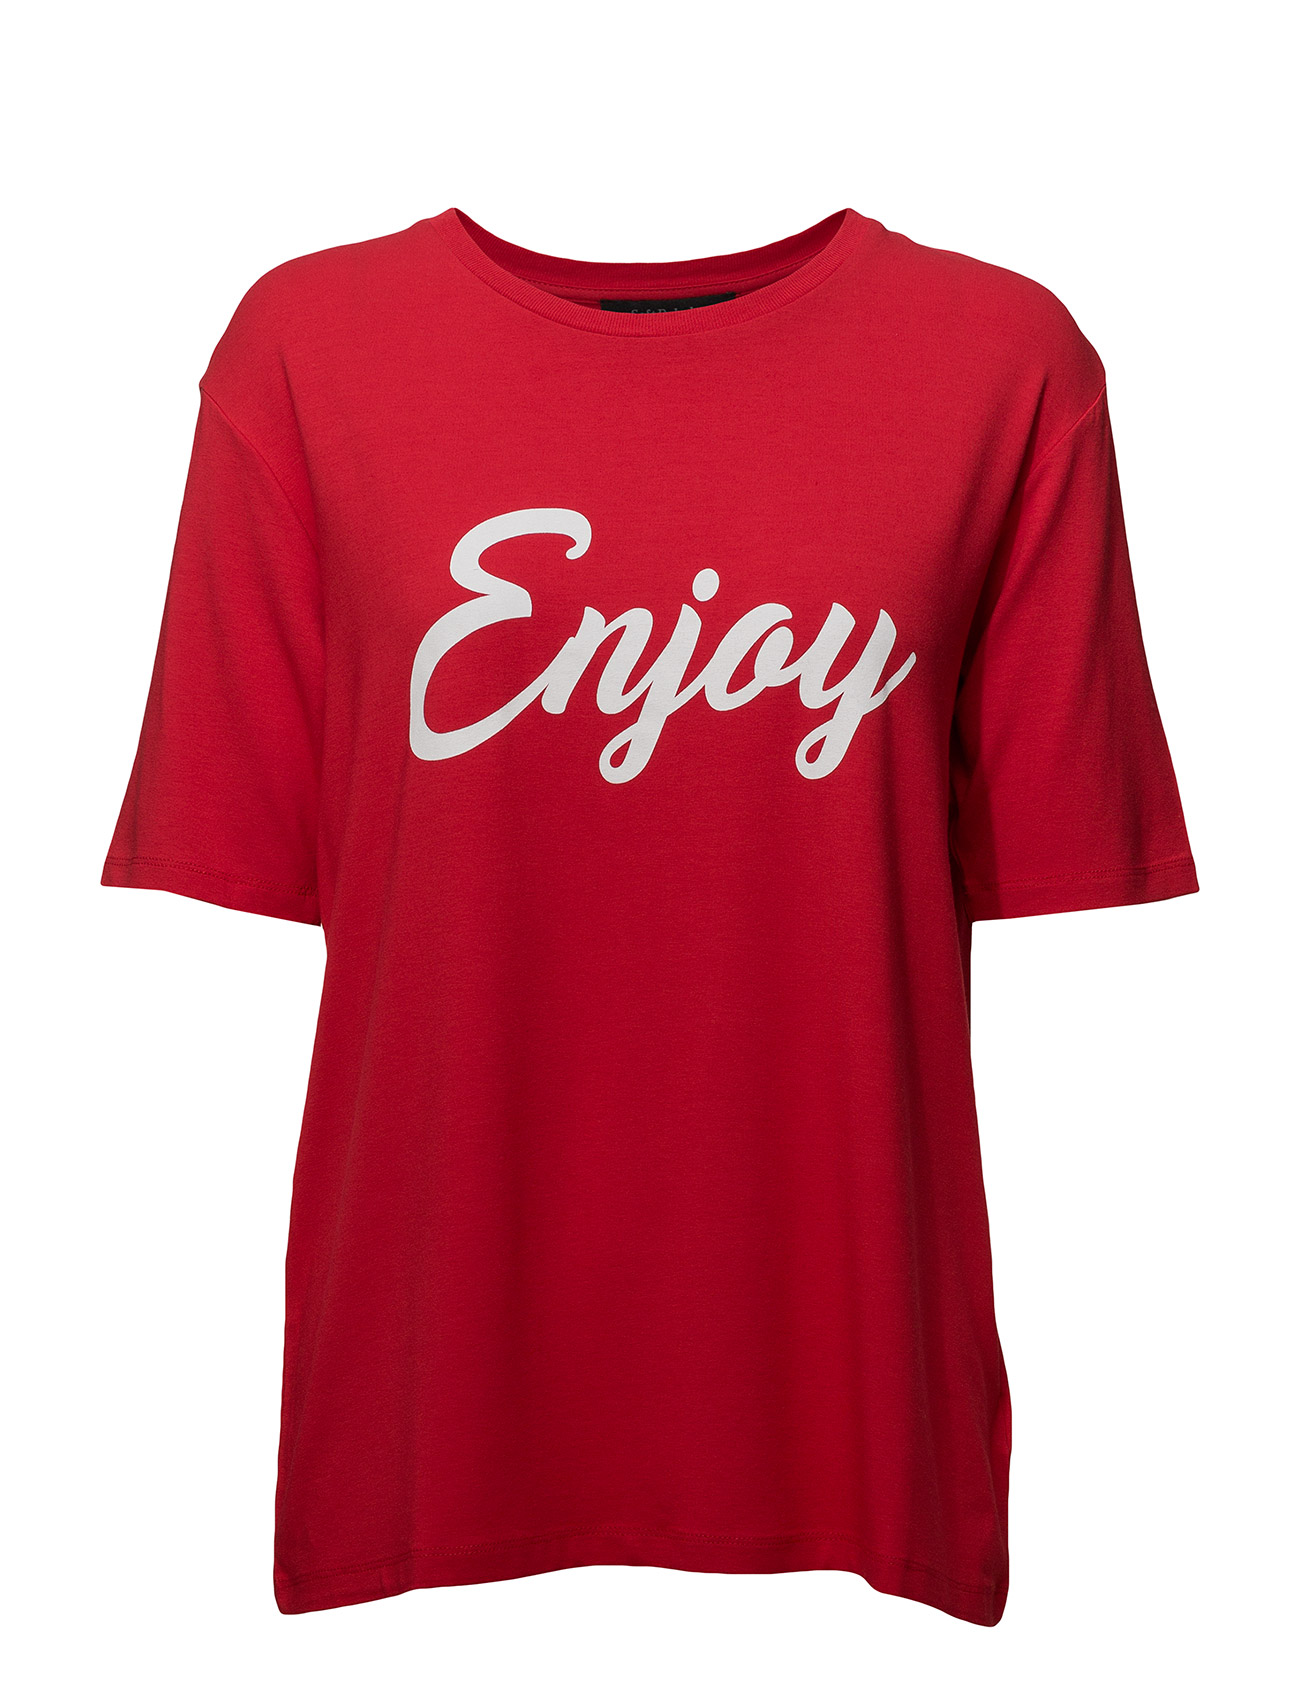 Soft Rebels Enjoy T-shirt - SPIZY RED